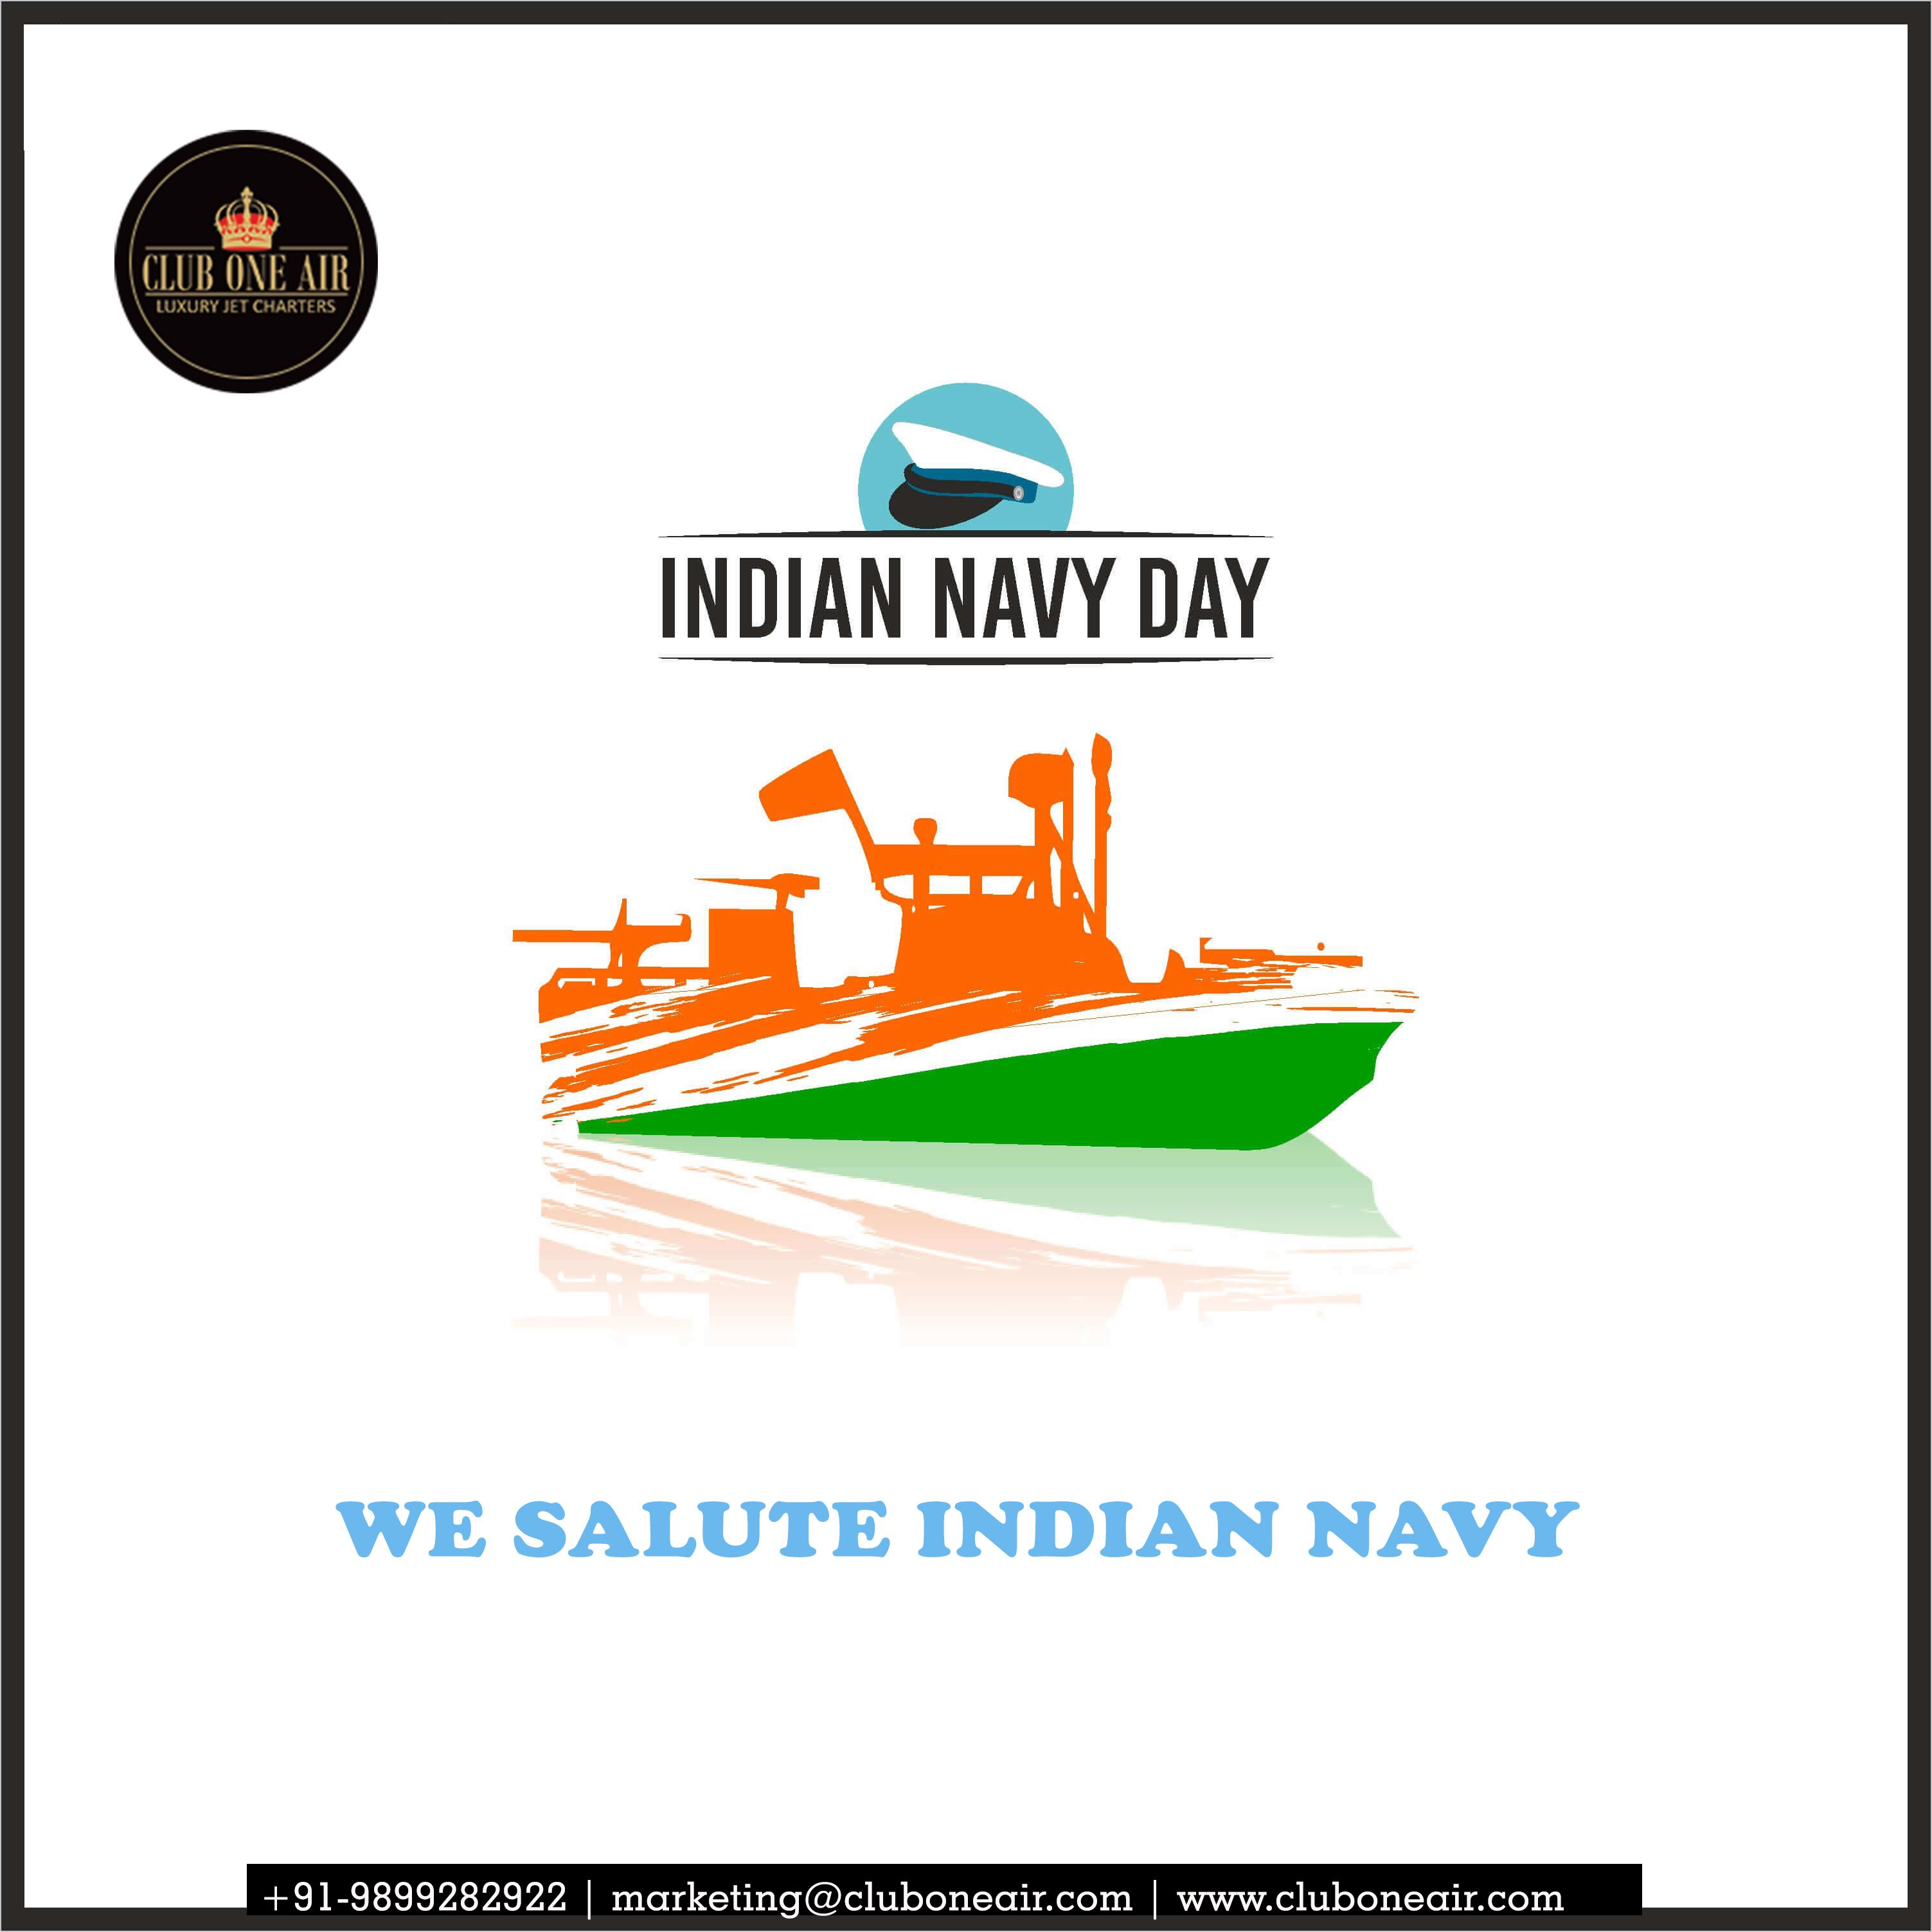 Club One Air Wishing All The Naval Personnel Serving The Nation With Pride A Very Happy Indian Navy Day Cluboneair Navy Day Indian Navy Day Indian Navy